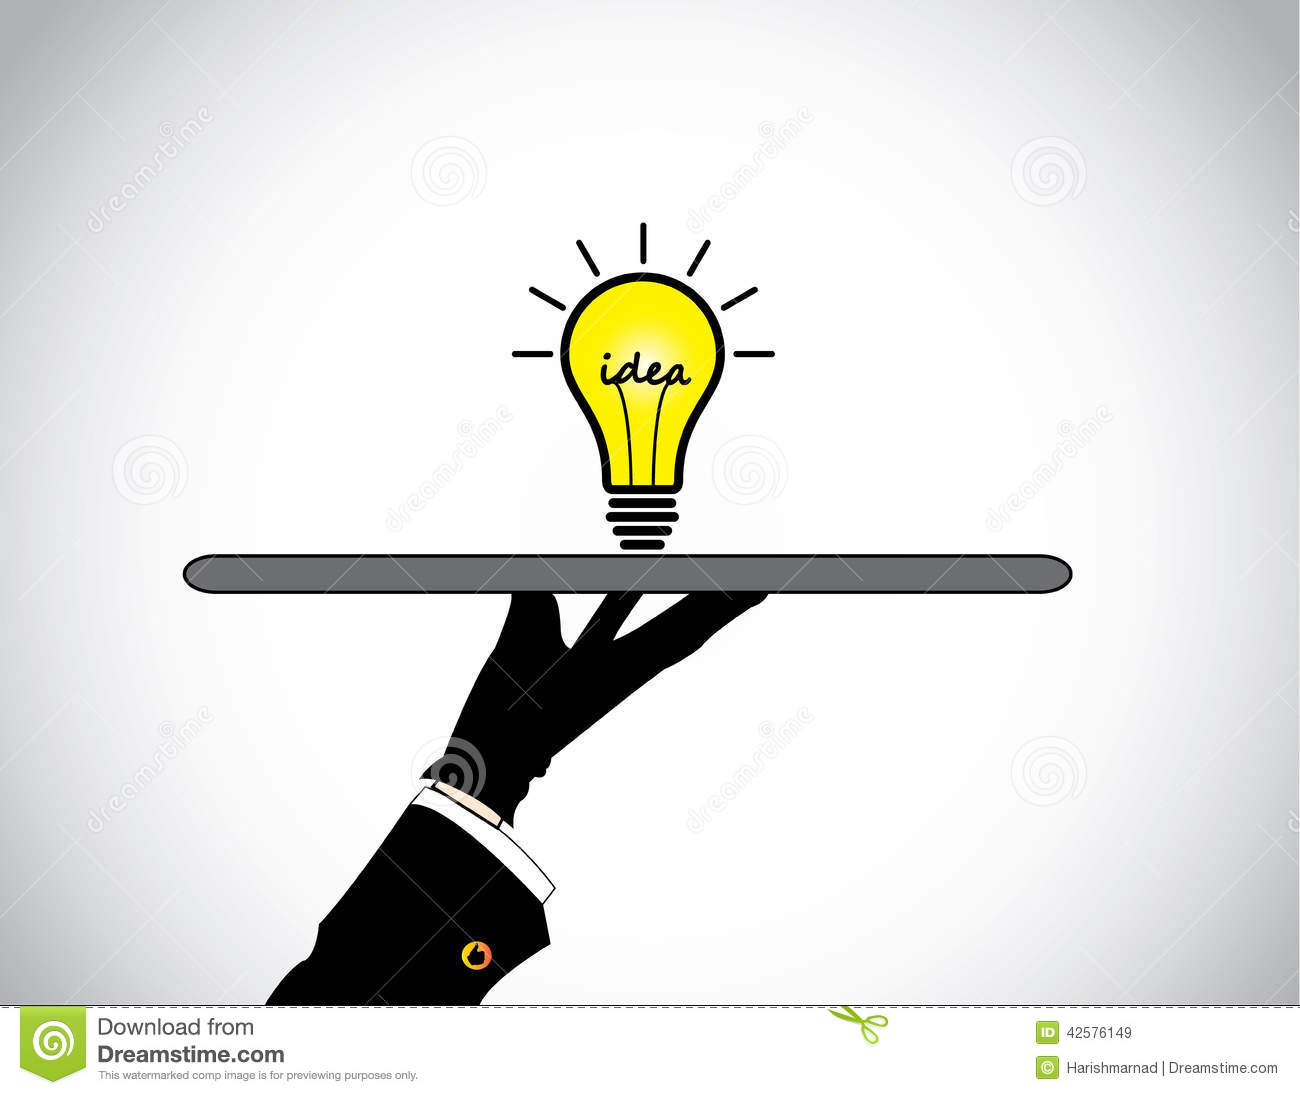 Idees And Solutions: Hand Presenting Sharing Of Bright Yellow Idea Solution